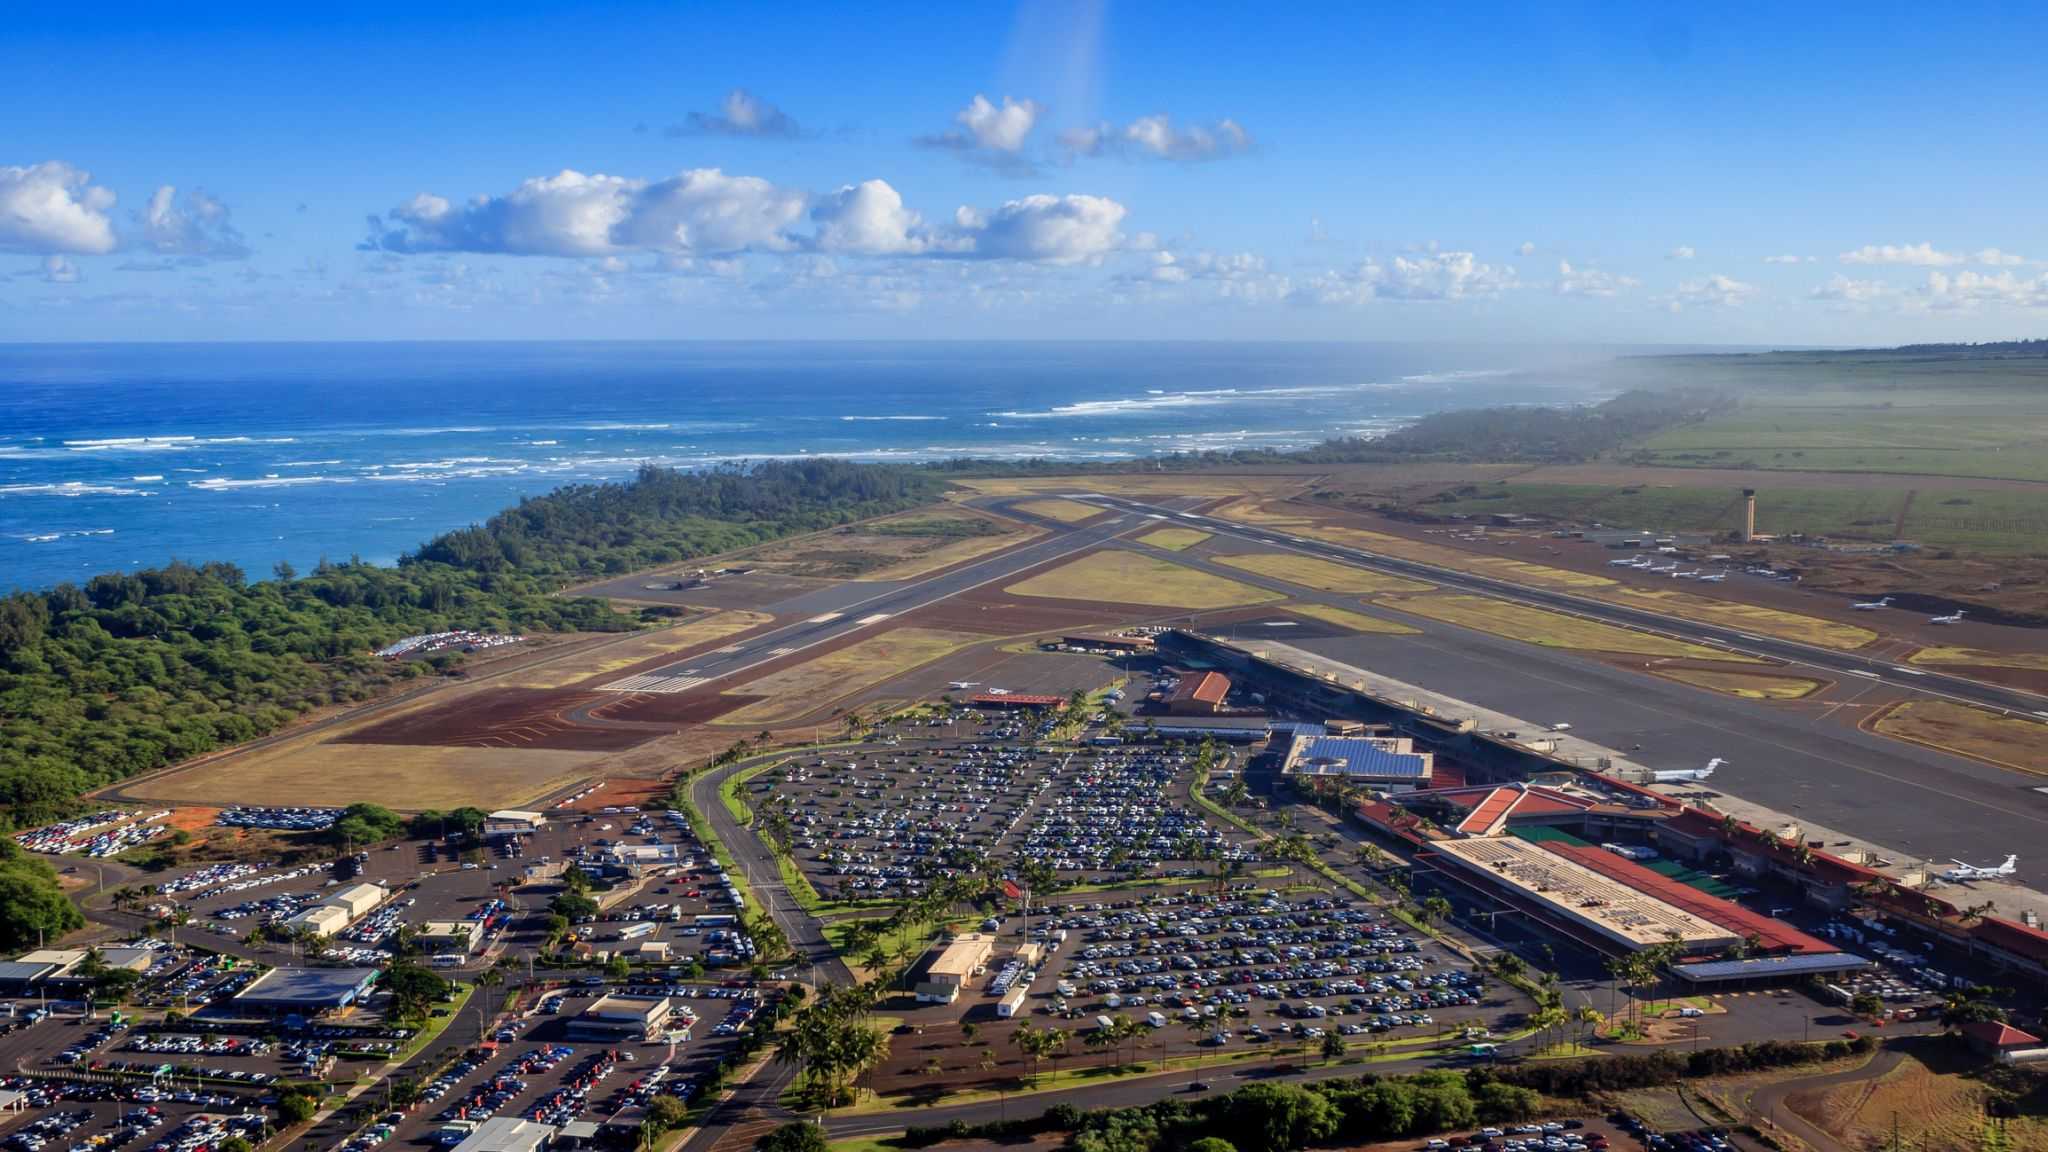 Bird on a plane causes commotion aboard flight from Hawaii